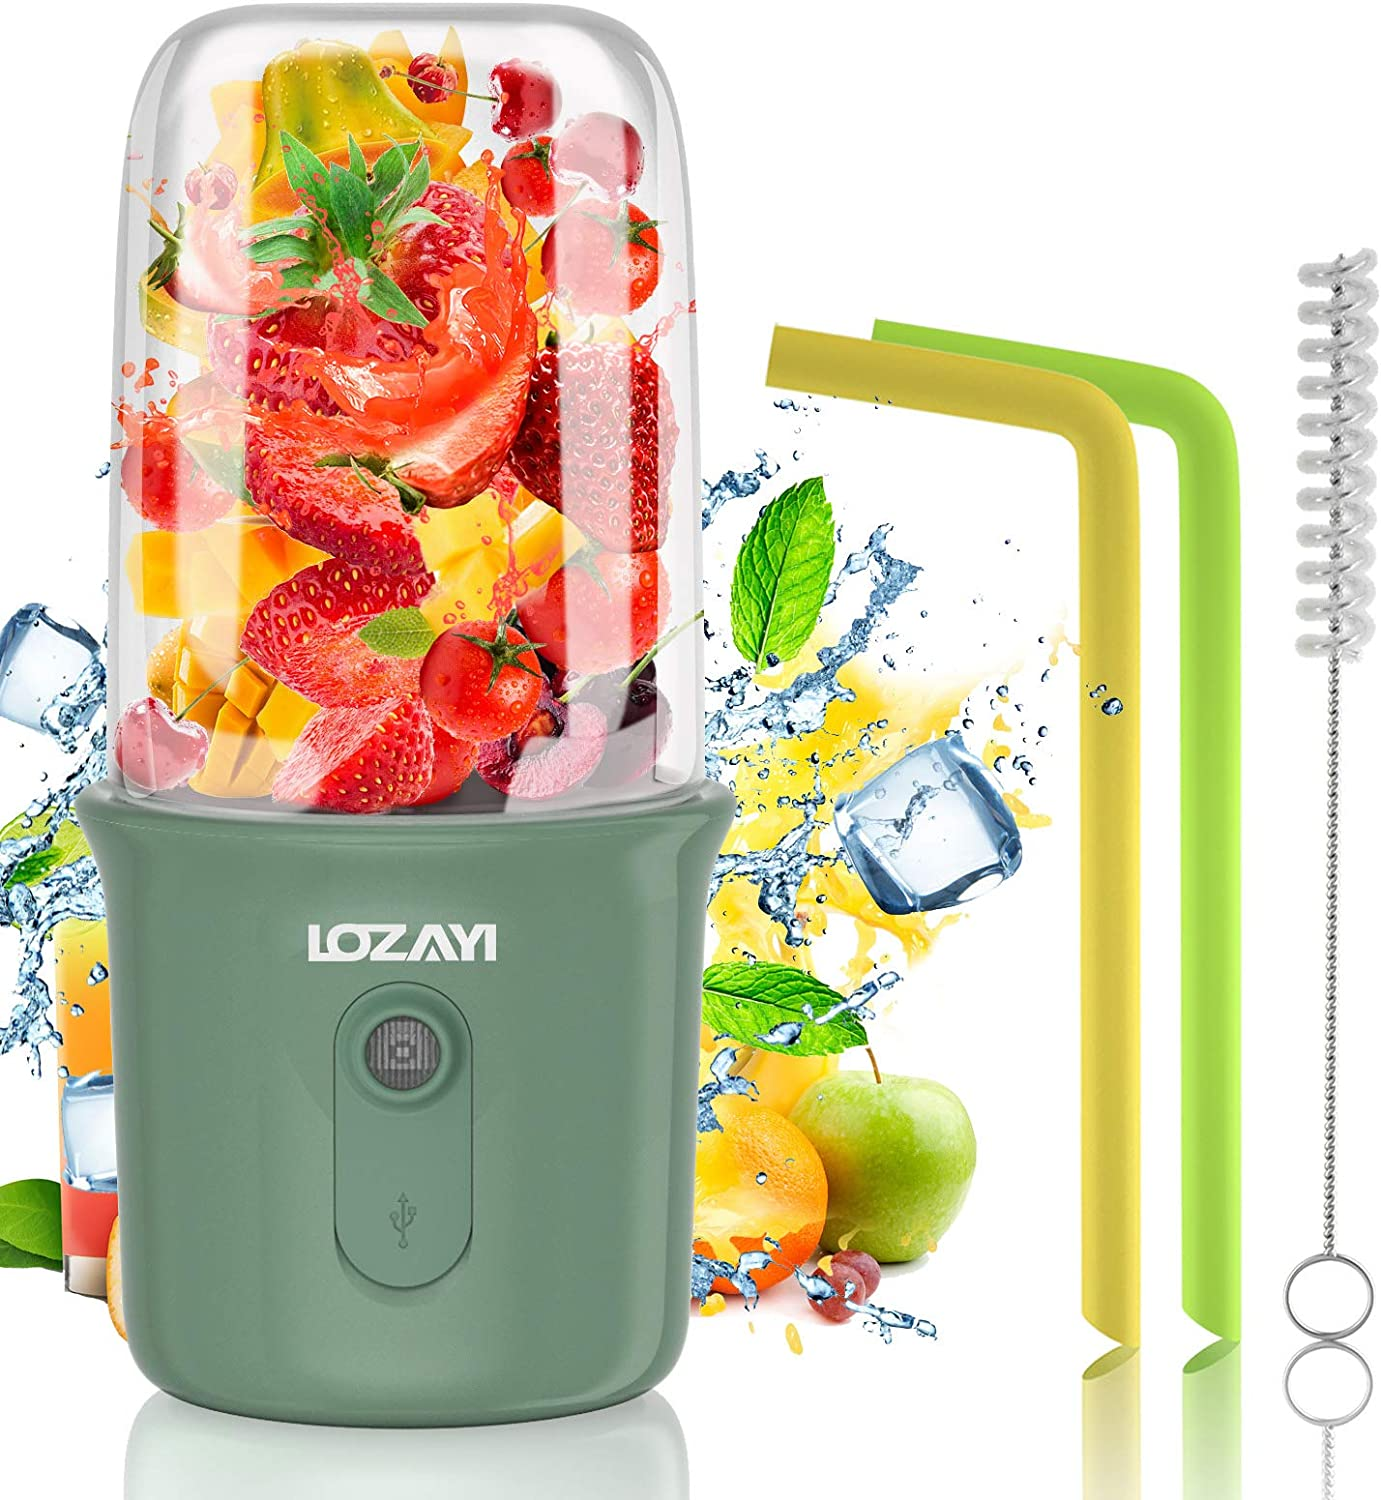 Portable Blender, LOZAYI Personal Mixer for Smoothie, USB Rechargeable for Home, Sports, Office, Outdoors,Travel Juicer Mixer Cup with Two Blades for Juice Shakes with 250ML/8.4OZ. Thickened Cup